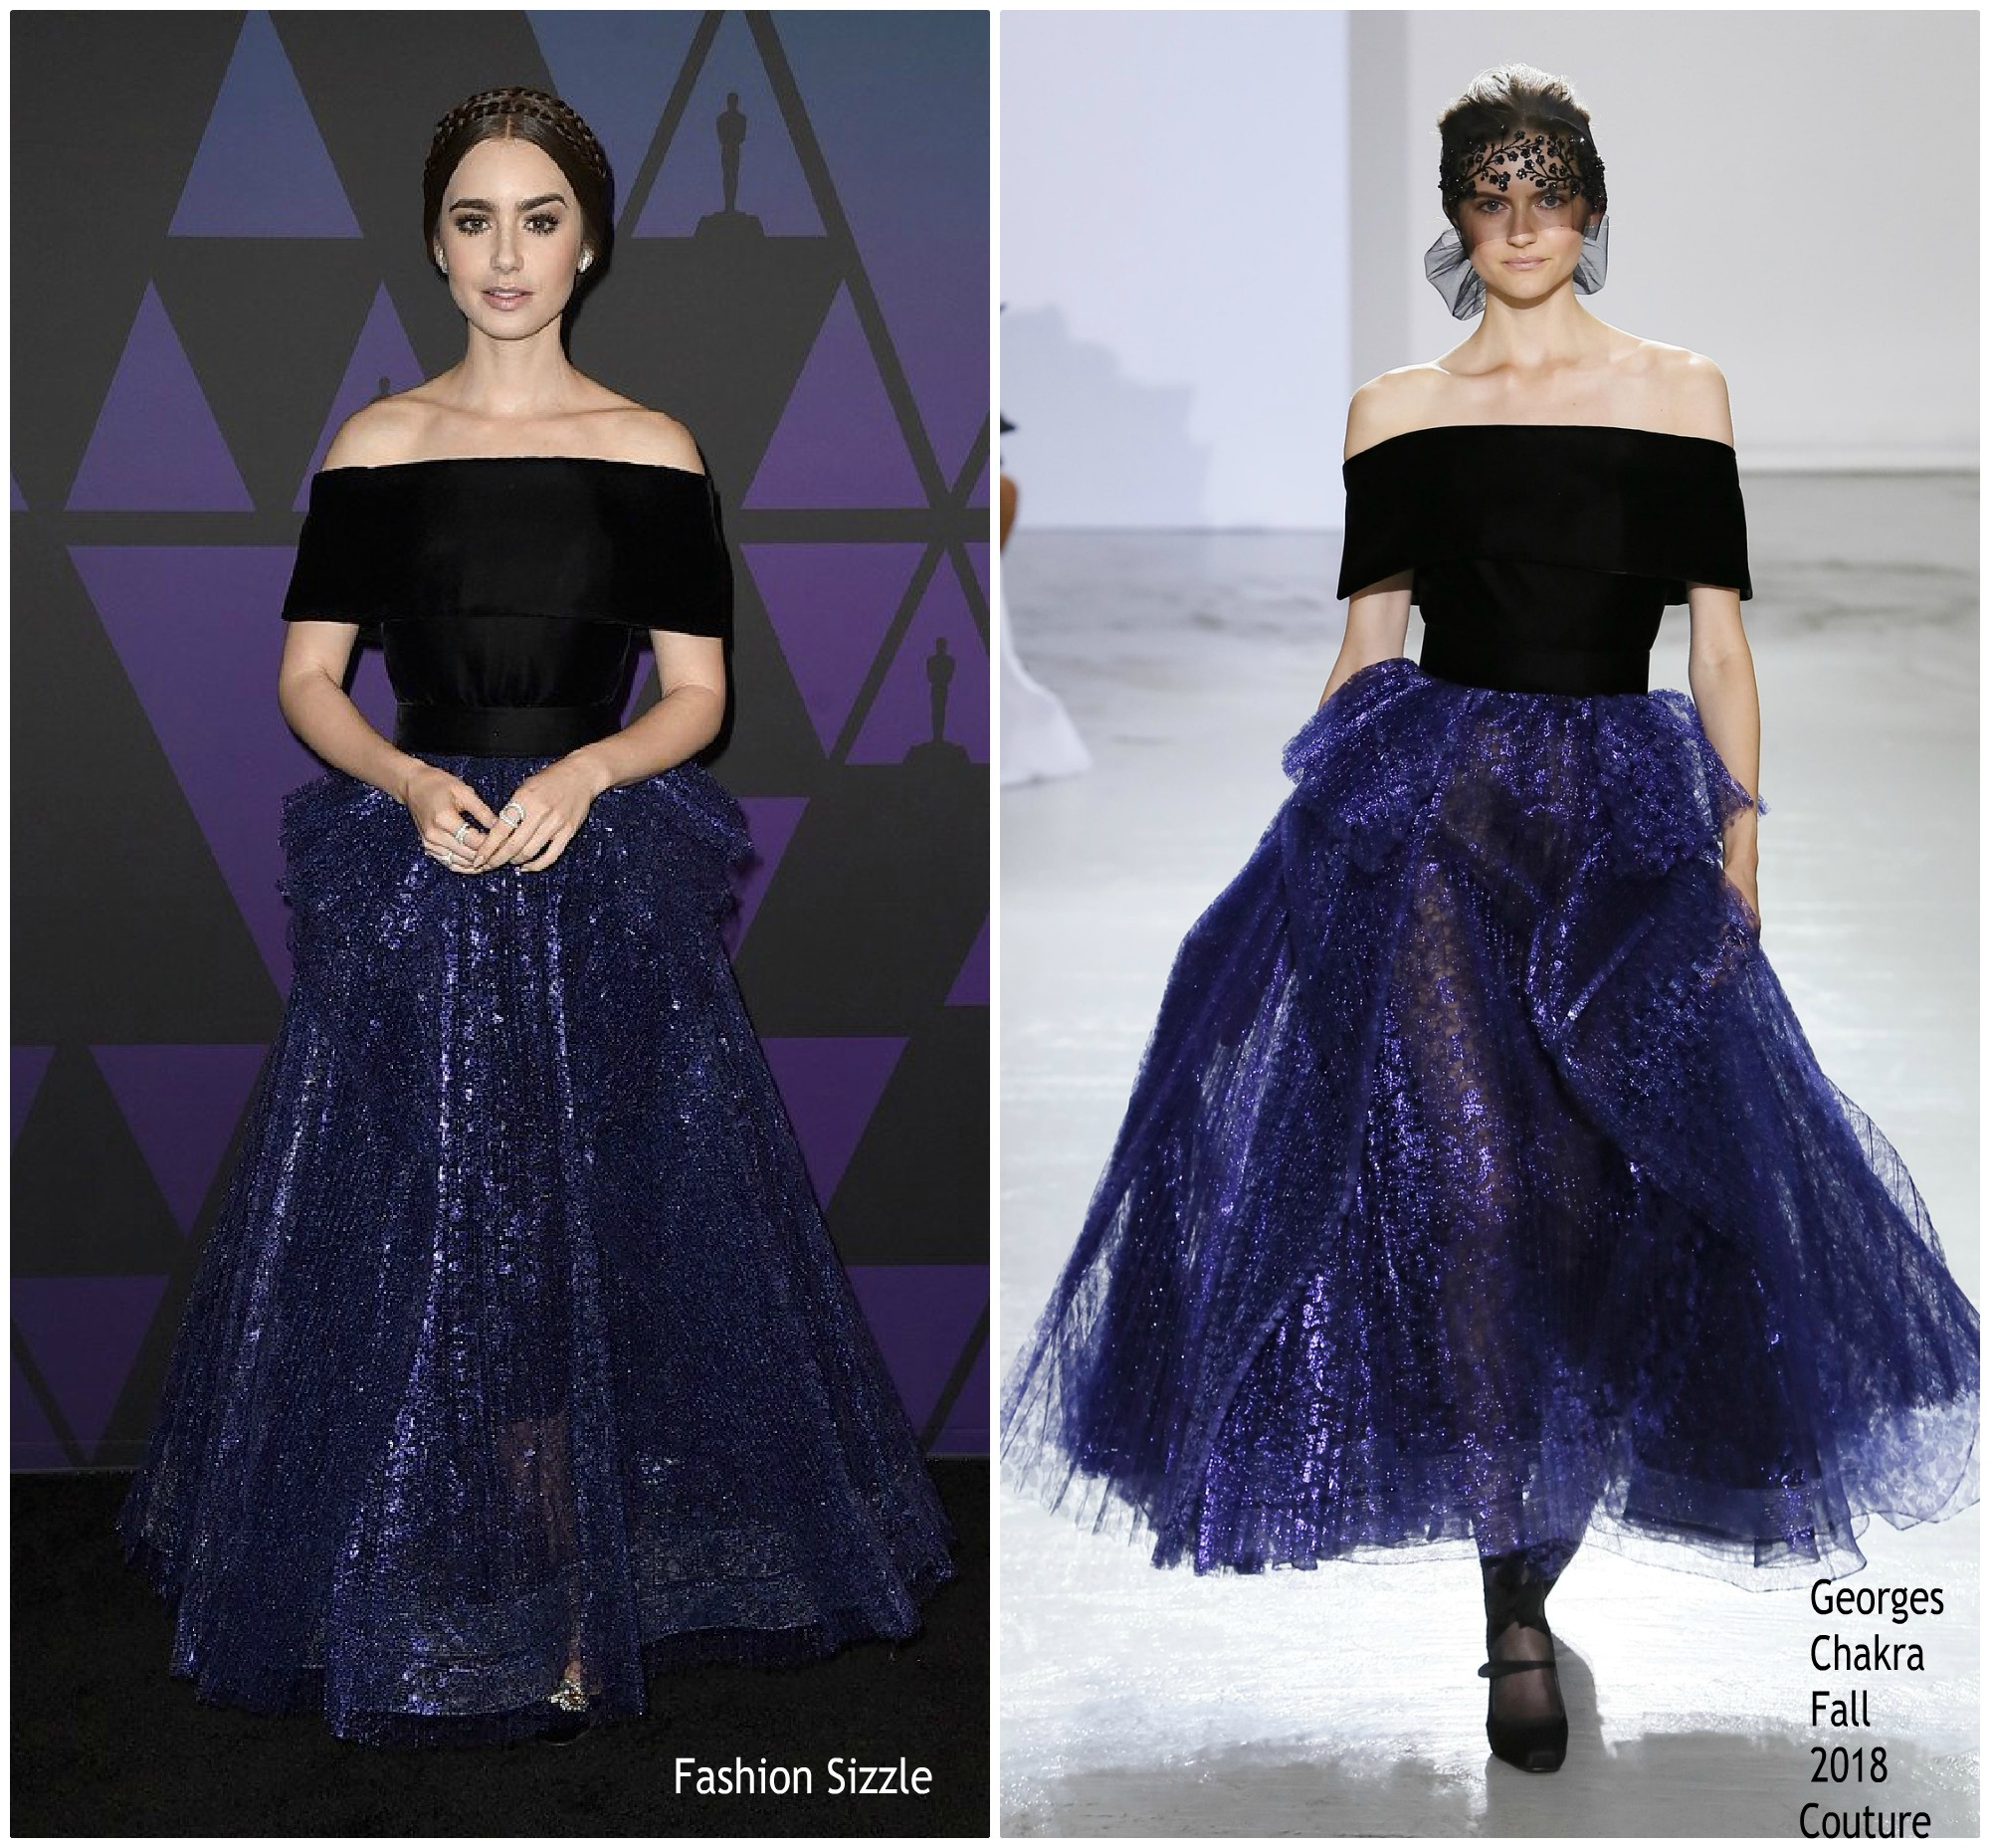 lily-collins-in-georges-chakra-couture-2018-governors-awards